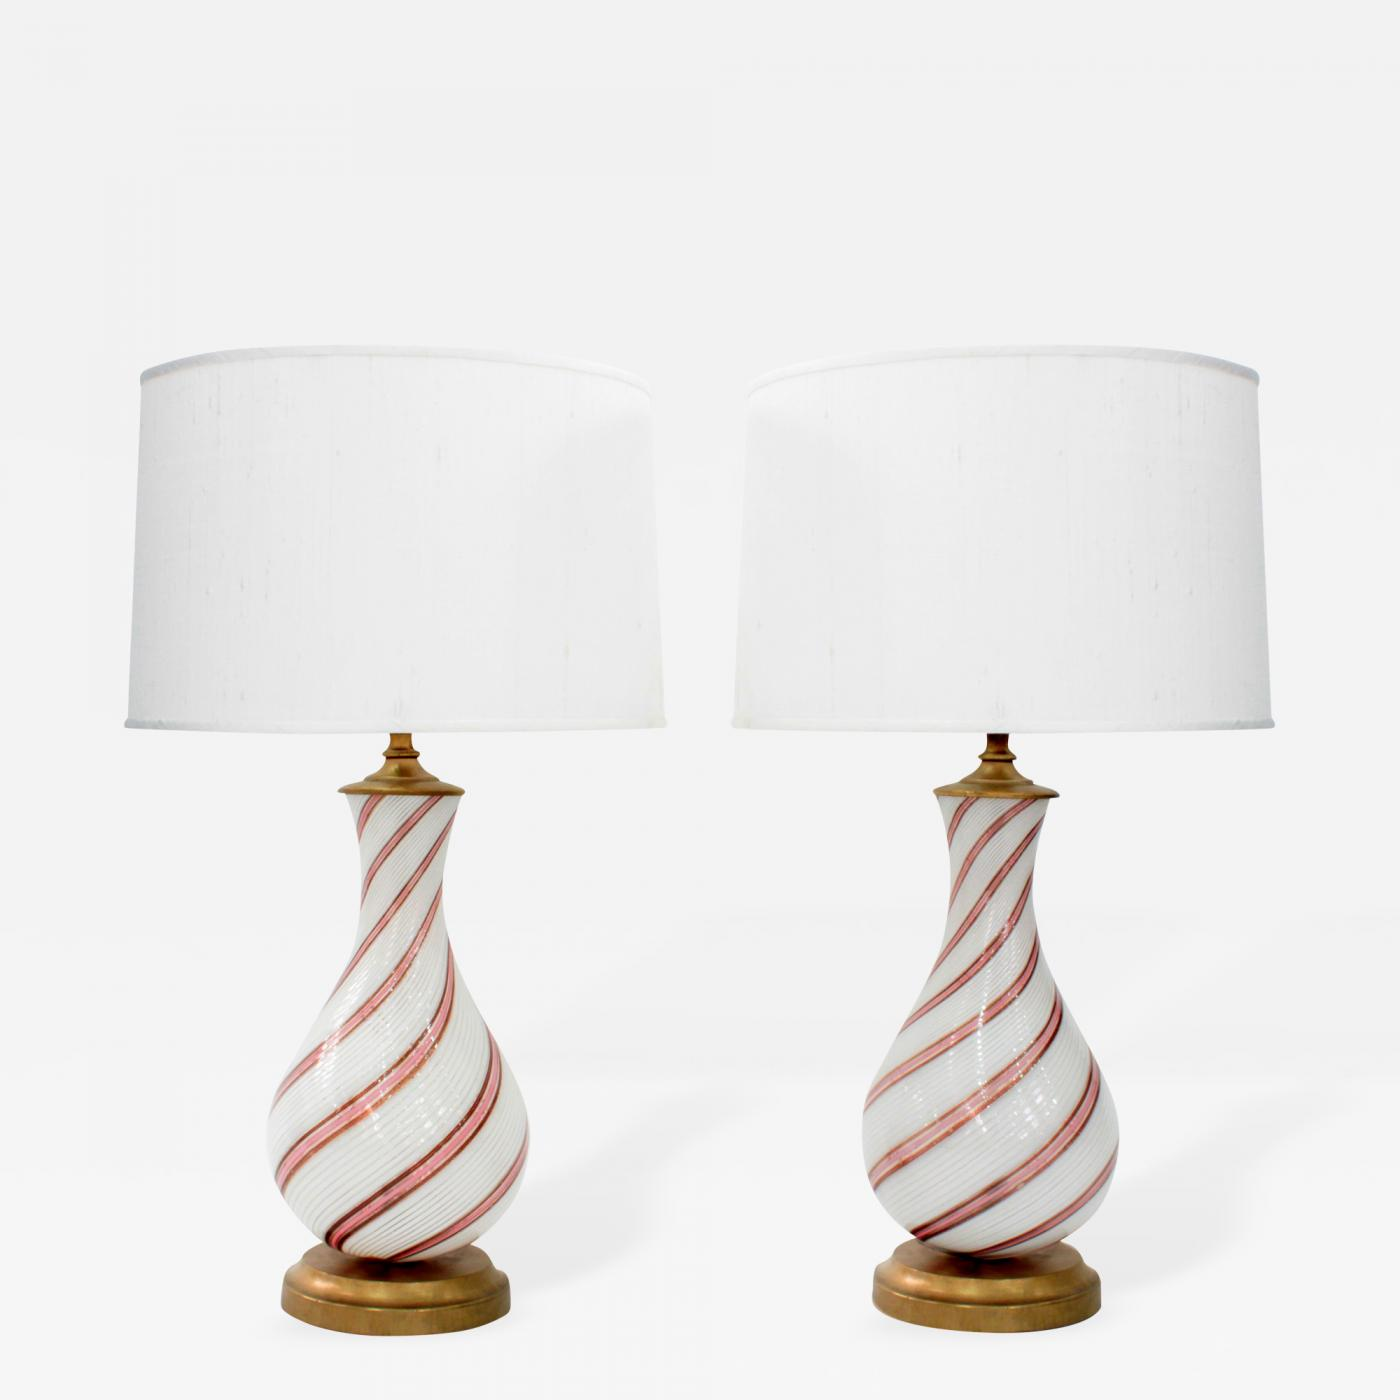 Blown glass table lamps - Listings Furniture Lighting Table Lamps